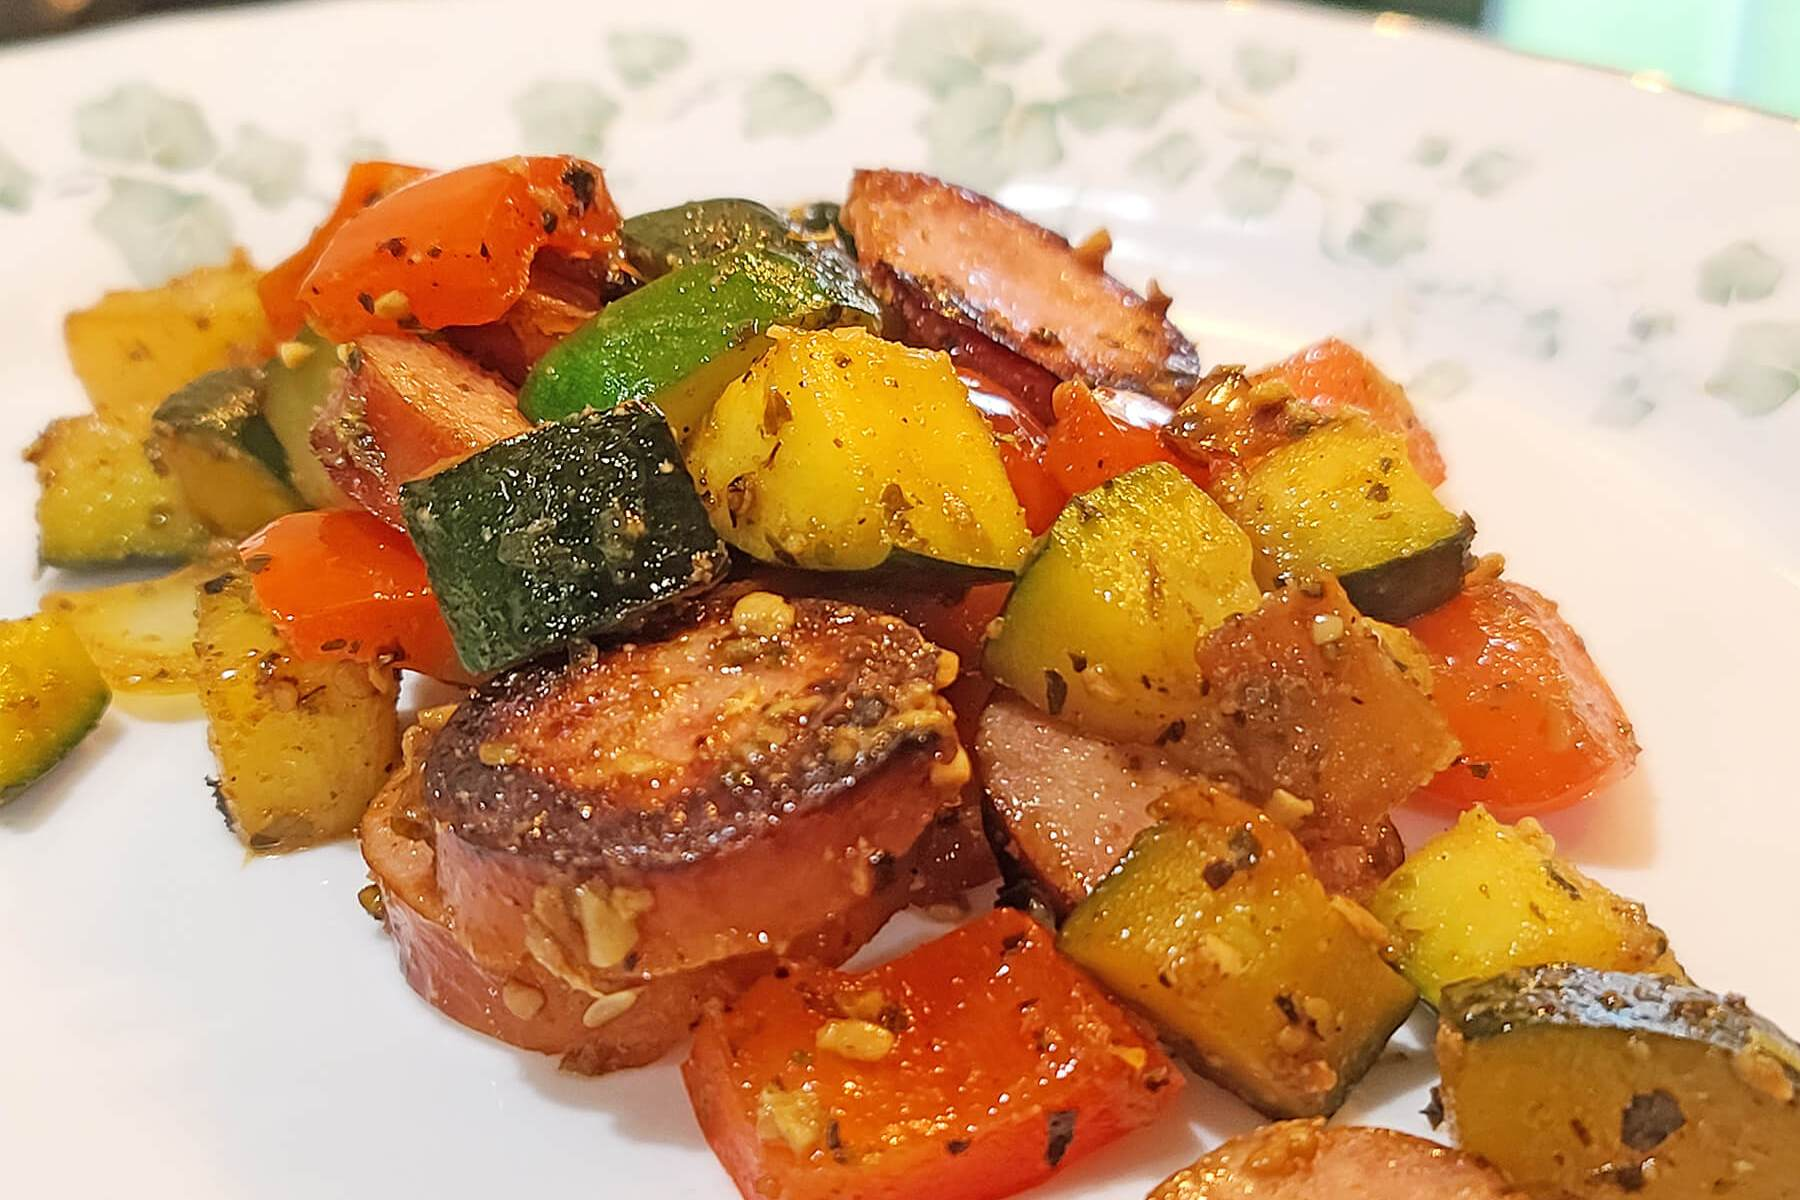 Skillet Sausage and Zucchini